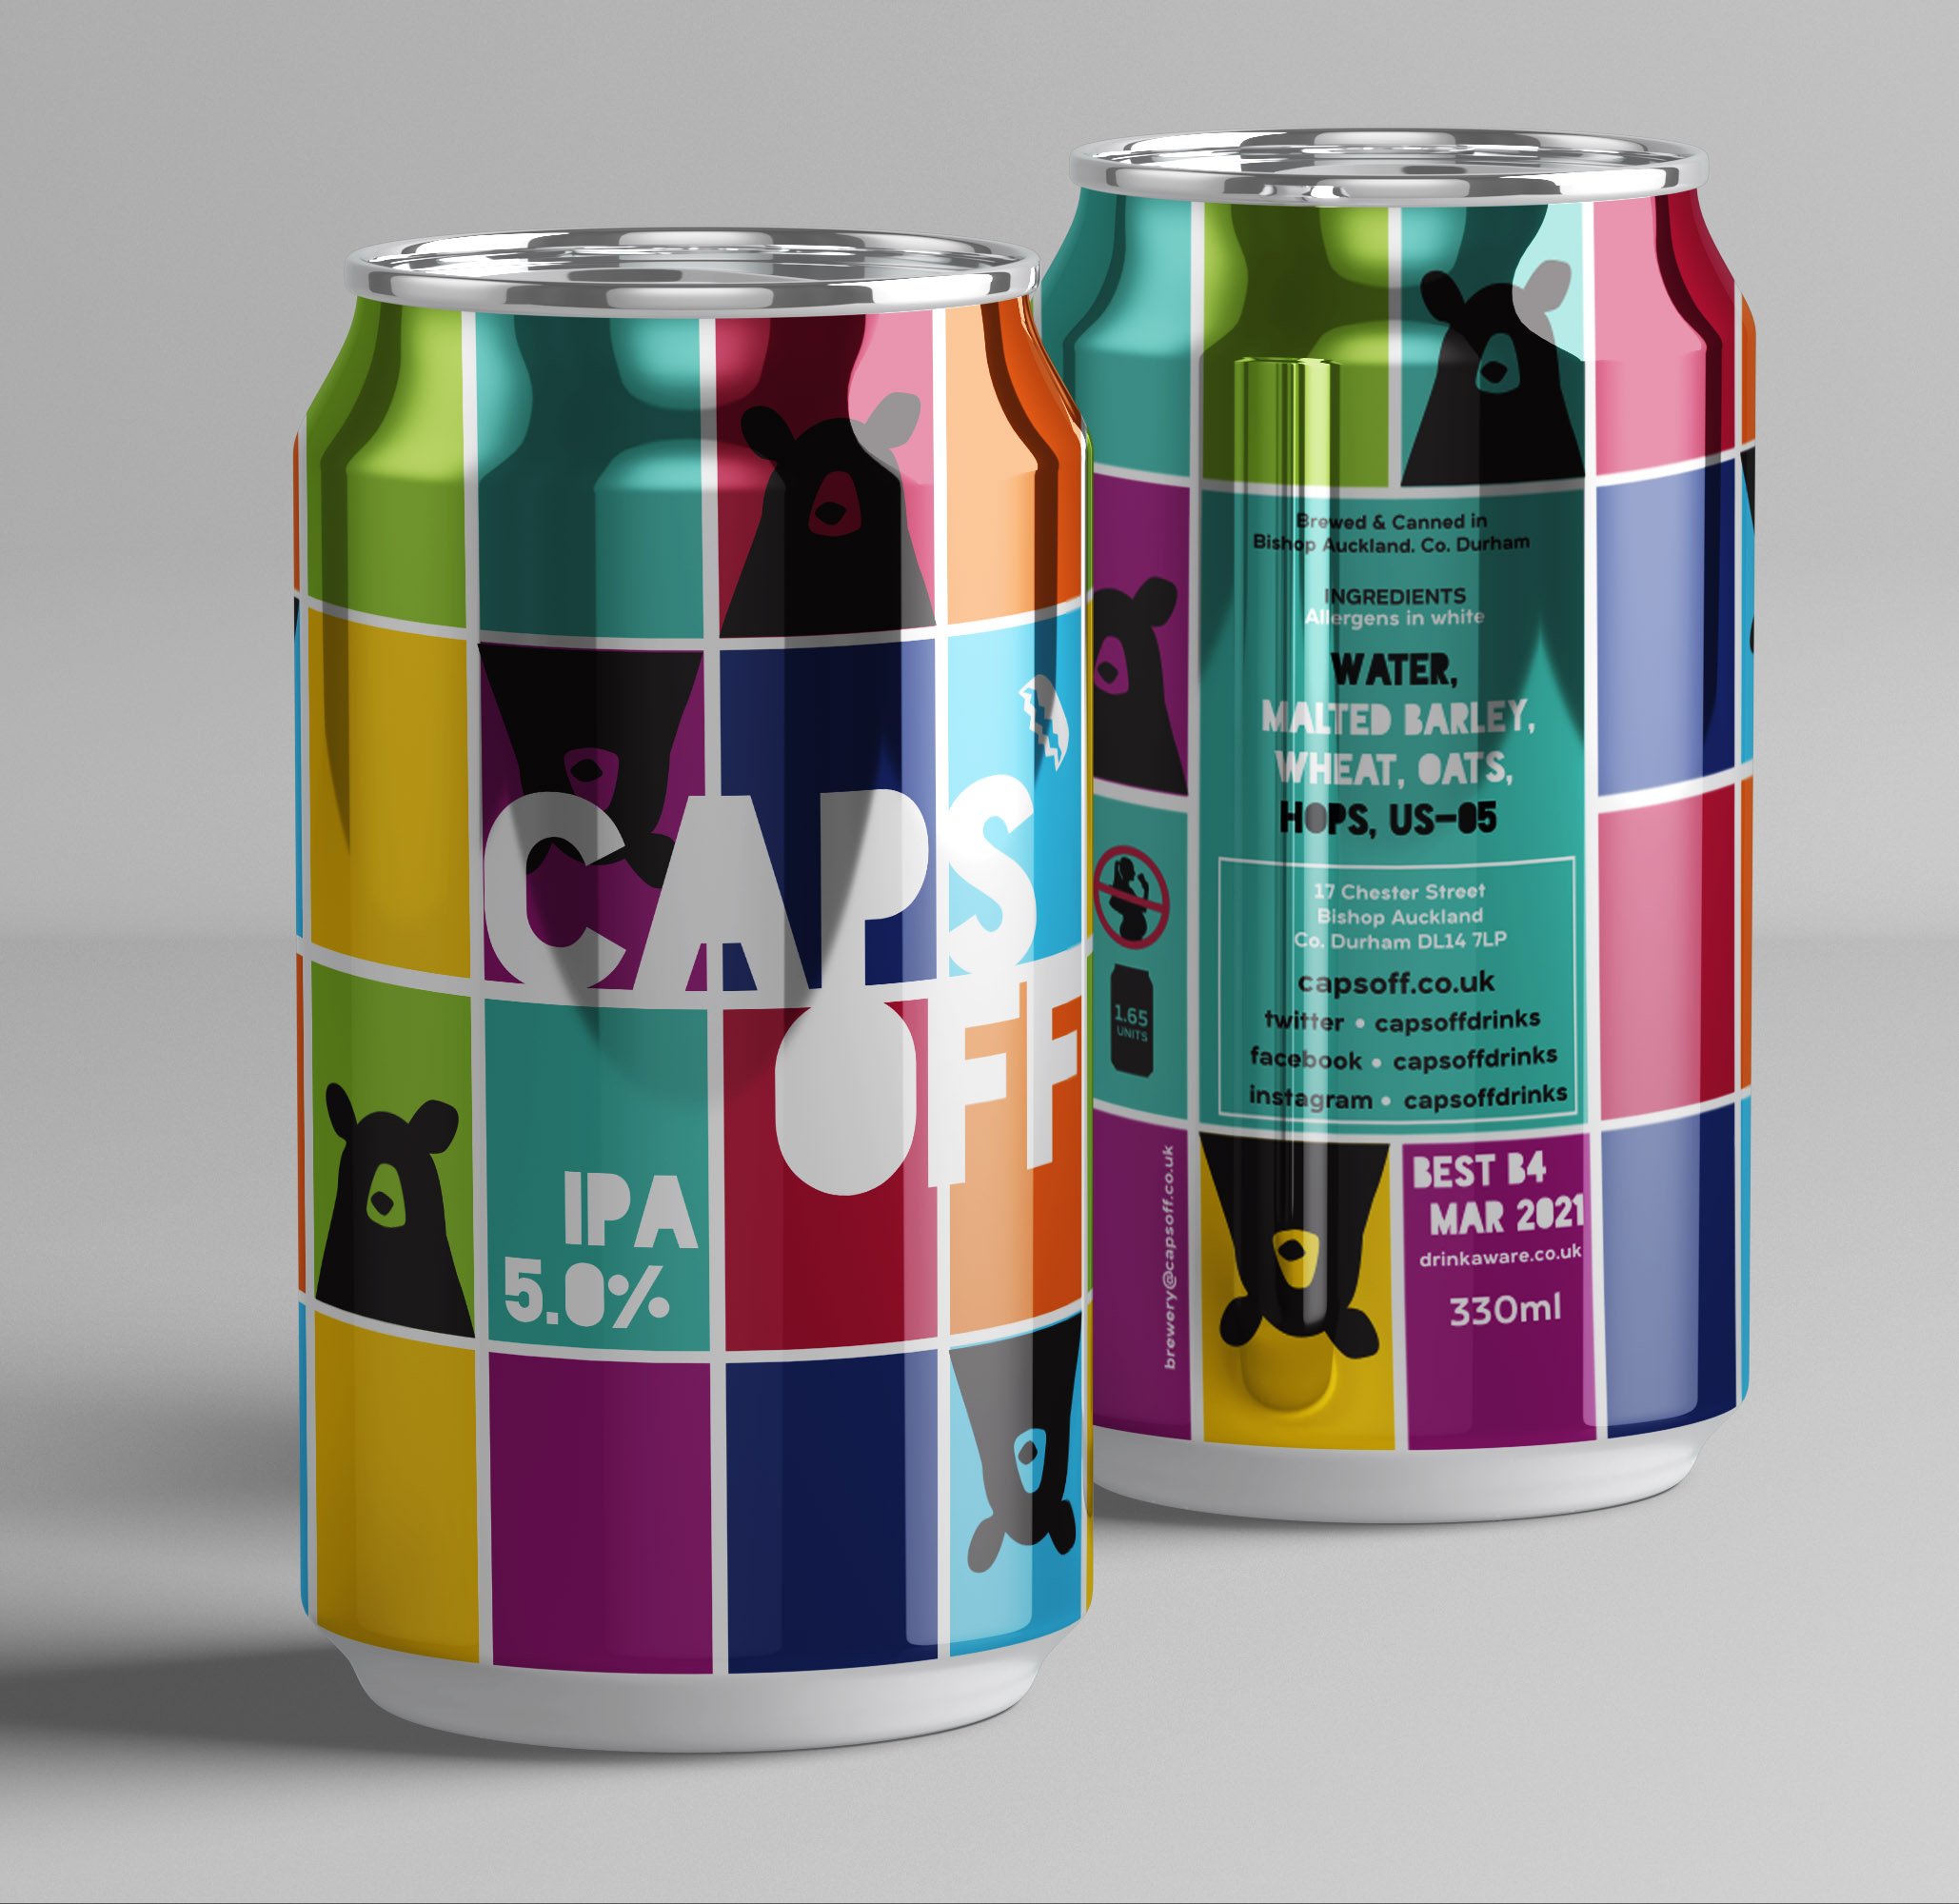 Caps Off IPA 330ml 5.0% (12 x 330ml Cans)